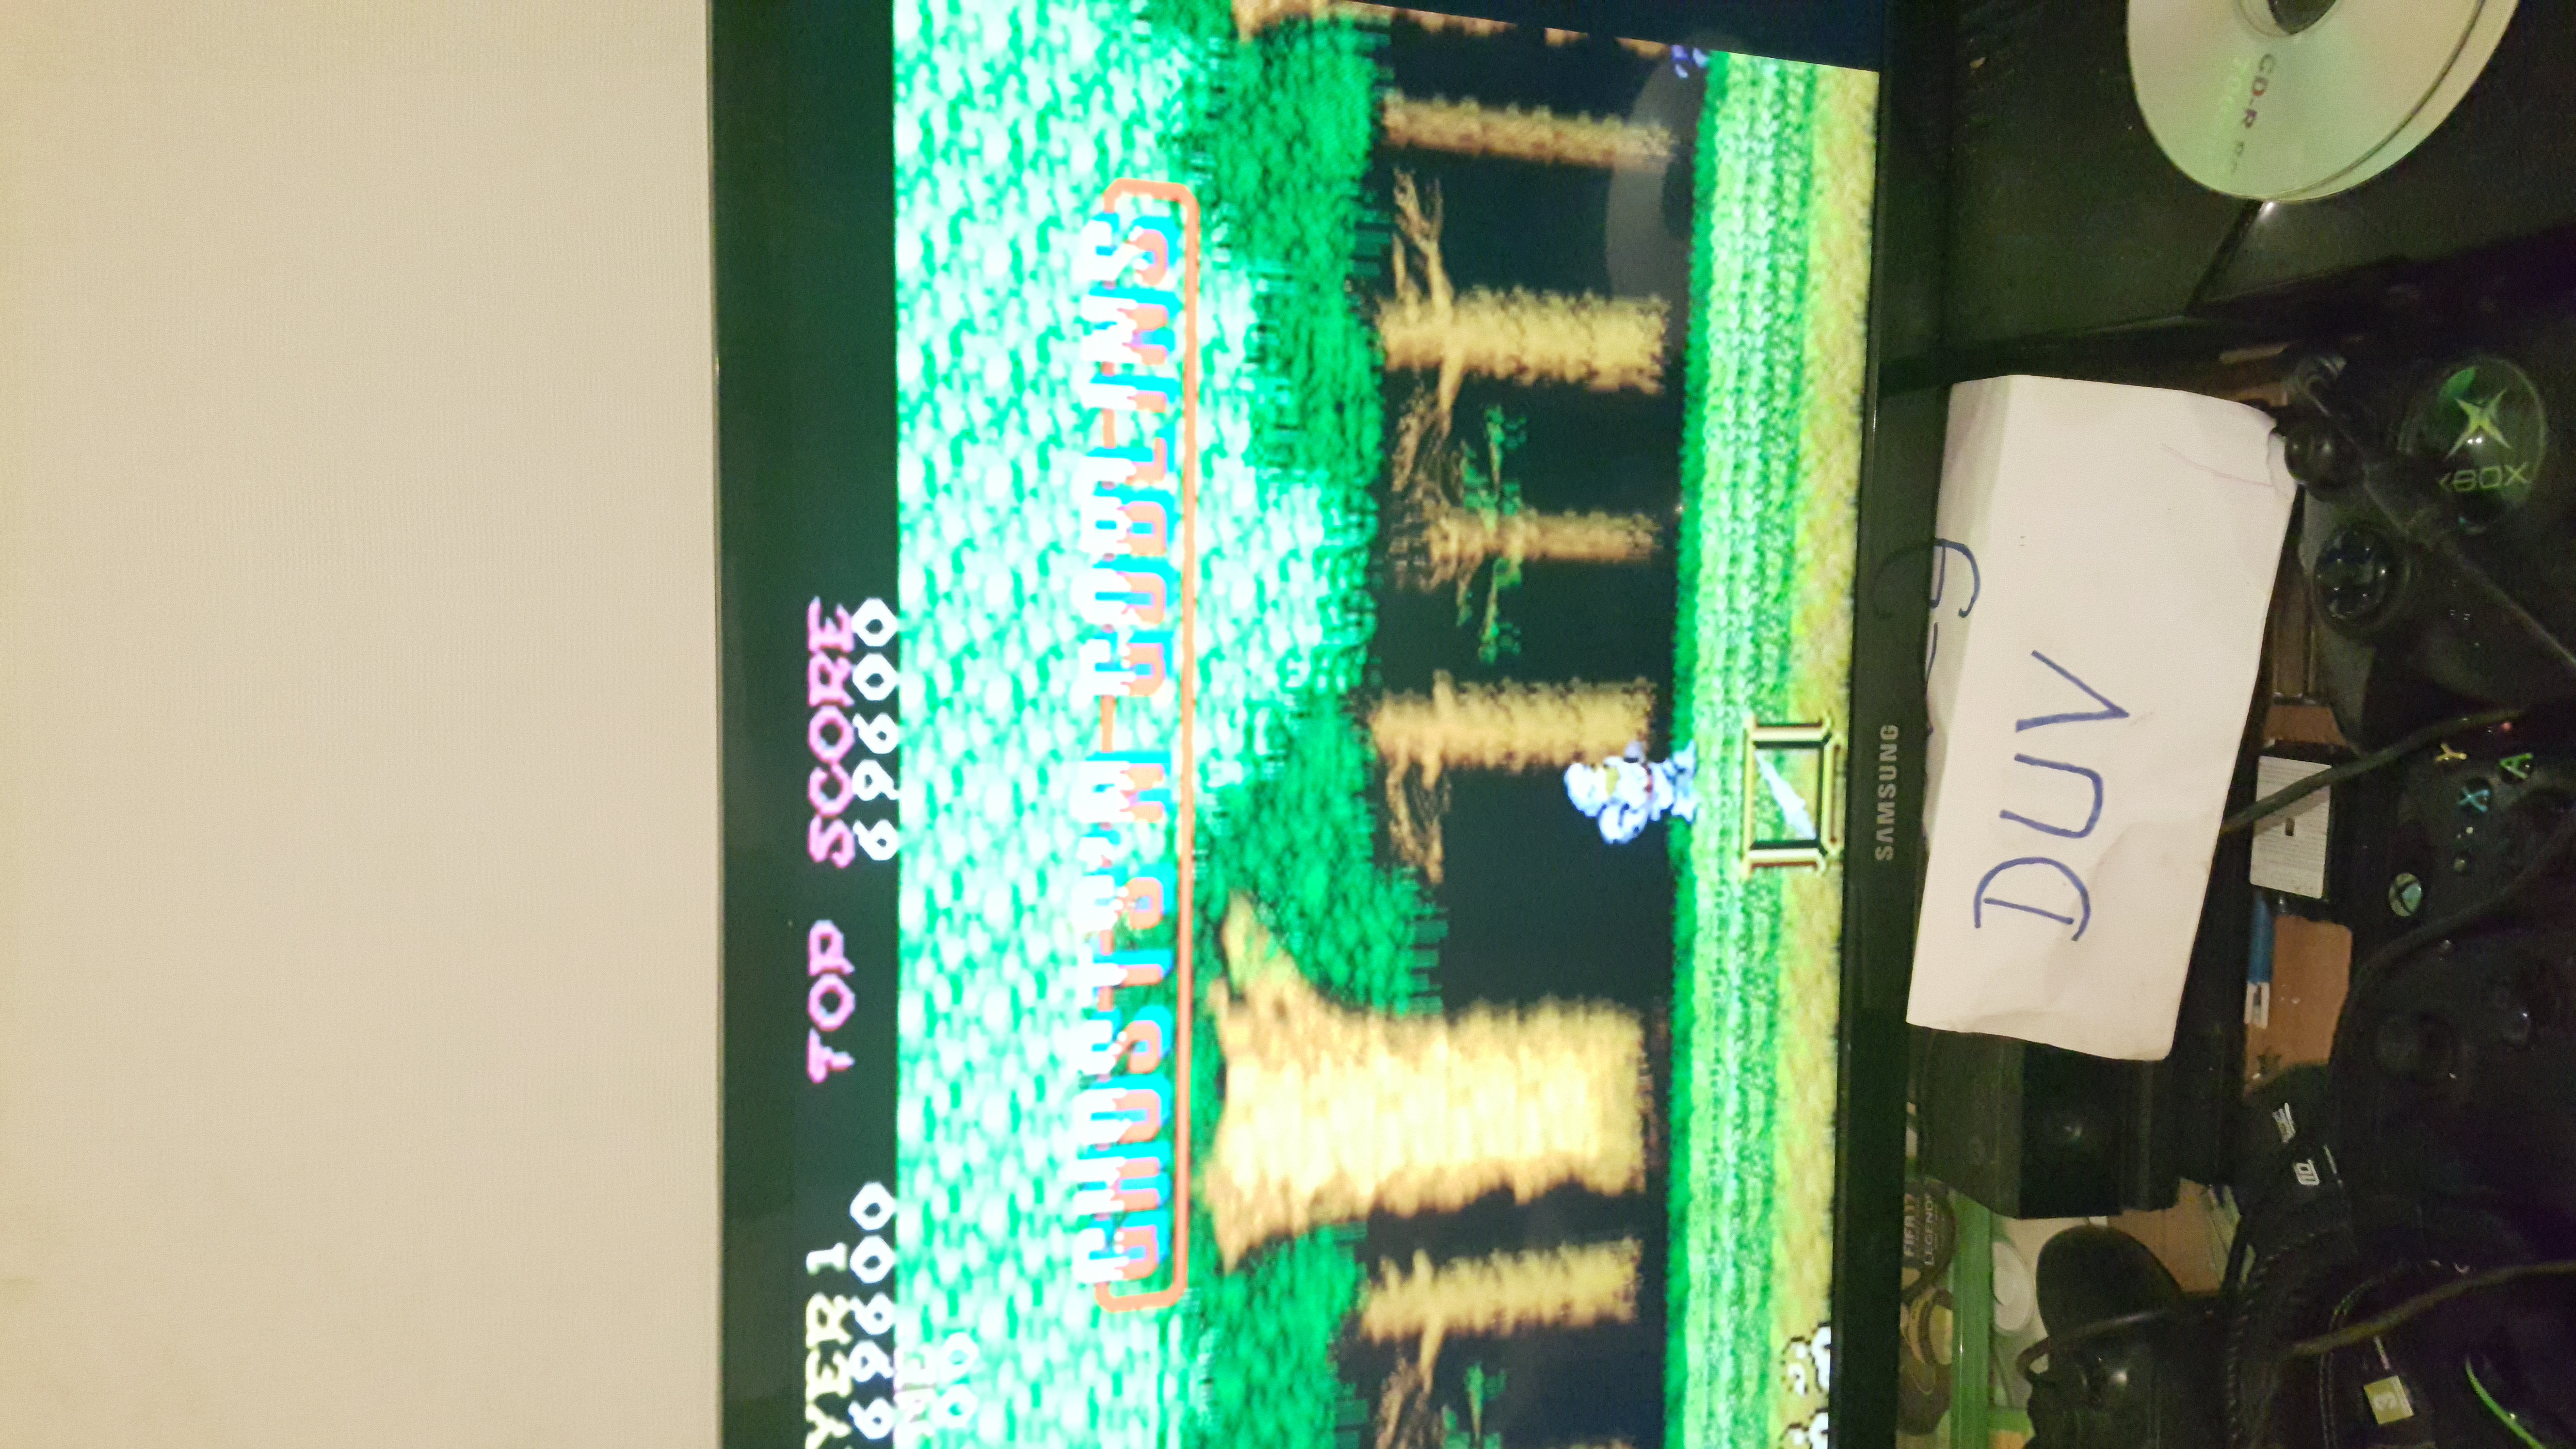 dovey: Ghosts N Goblins (Arcade Emulated / M.A.M.E.) 69,600 points on 2016-11-13 15:46:01